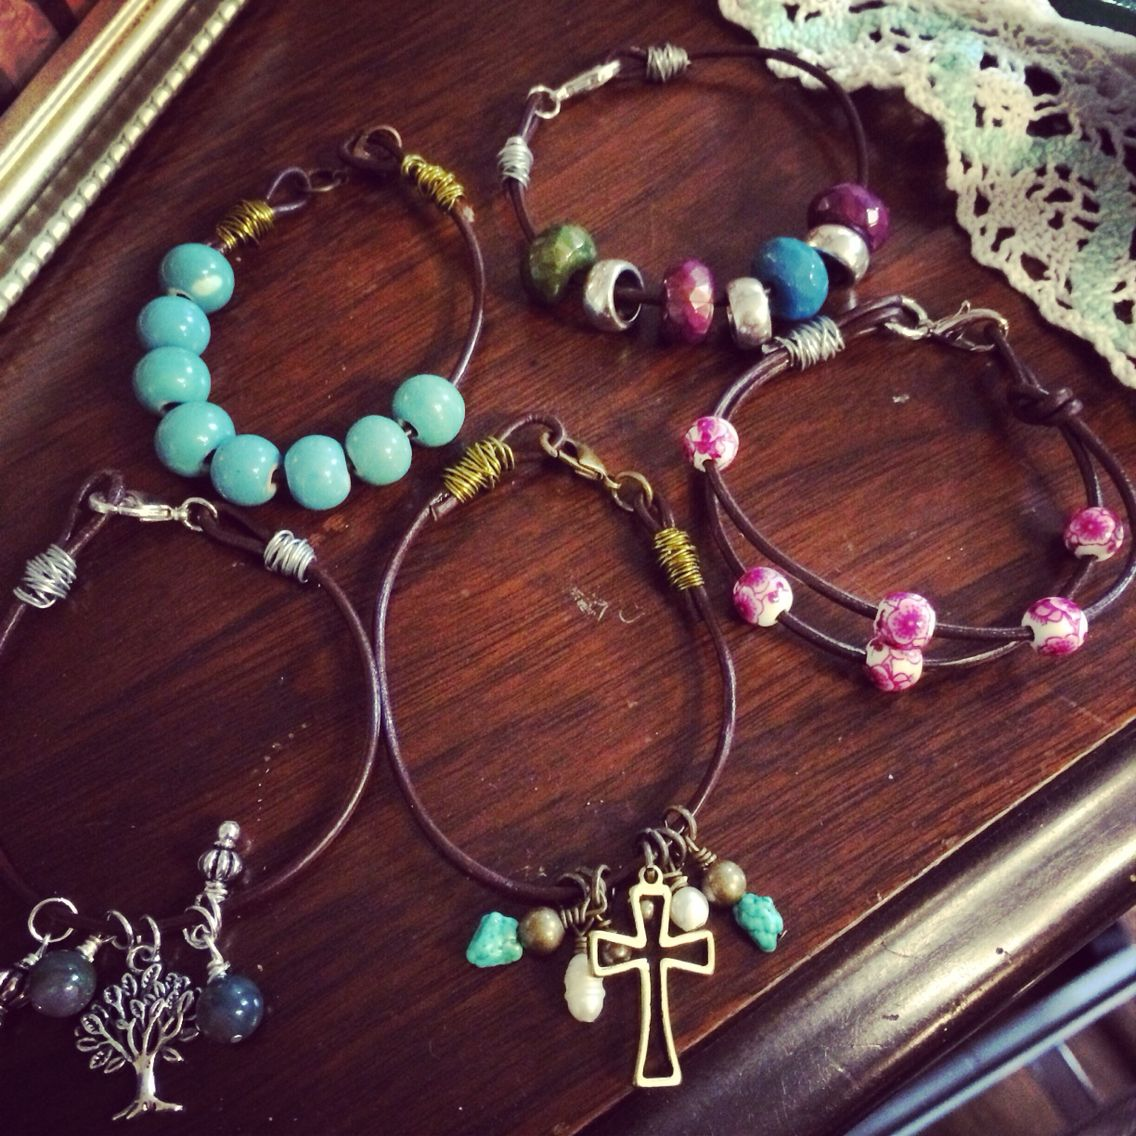 Handmade wire wrapped and leather bracelets by Blackbyrd Jewelry in Knoxville, Tn.